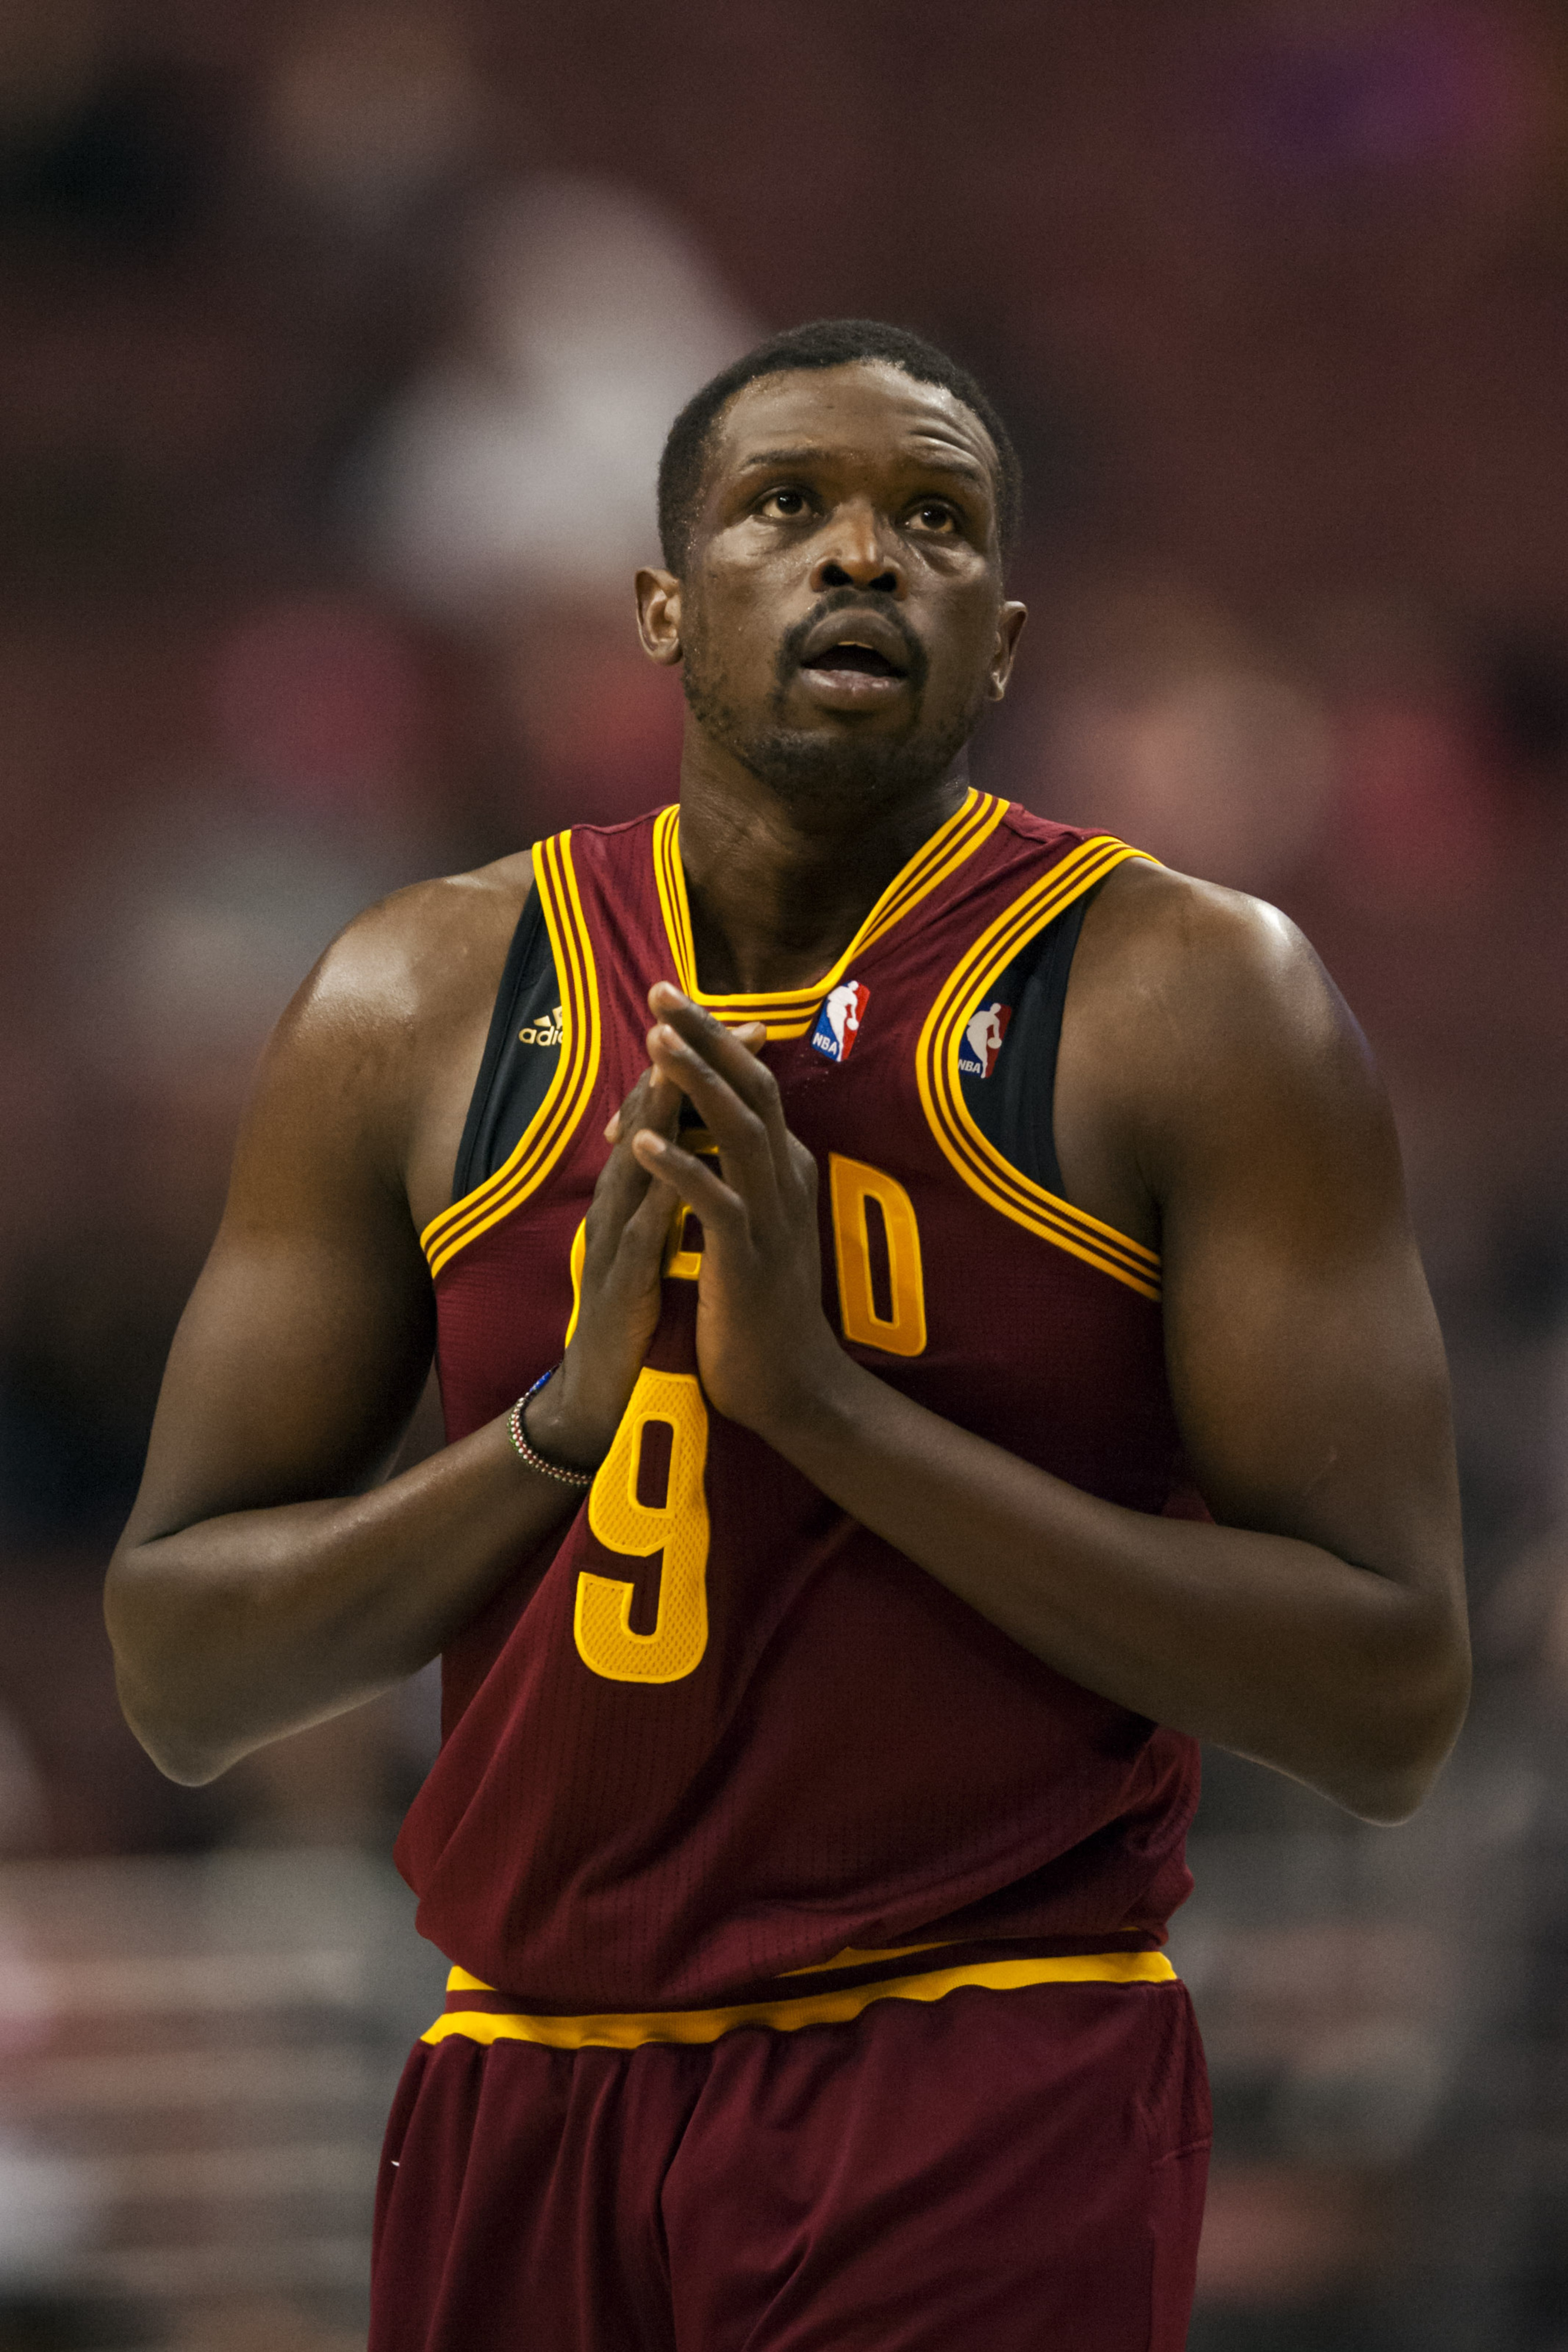 NBA not actively investigating source of Luol Deng 'African' comment, according to report